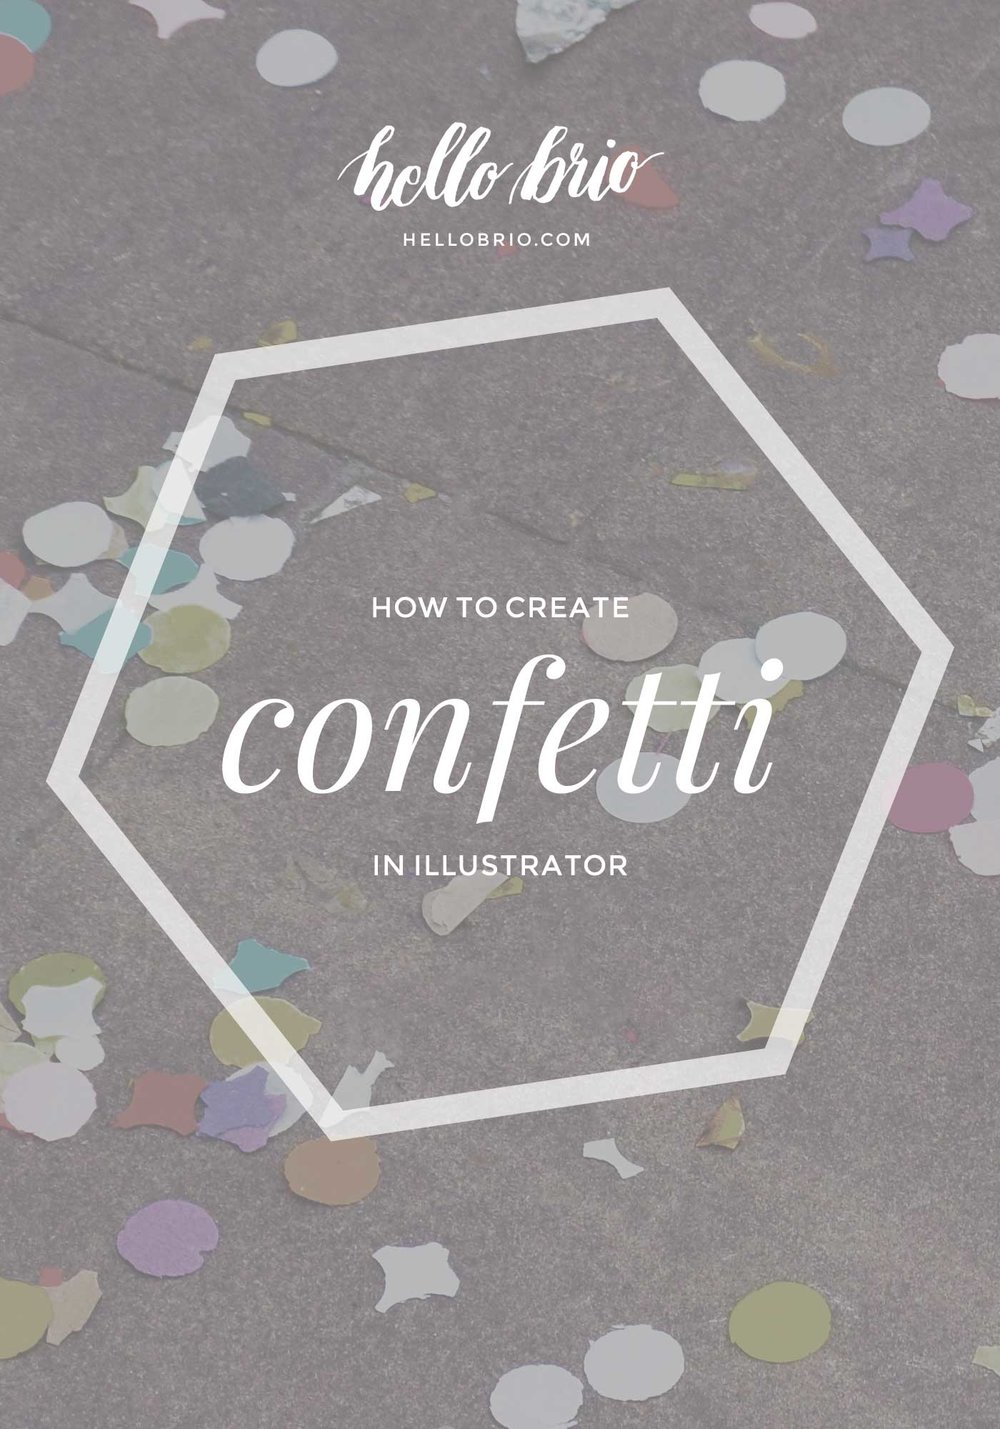 How to create confetti in Adobe Illustrator using the scatter brush tool | Hello Brio tutorials